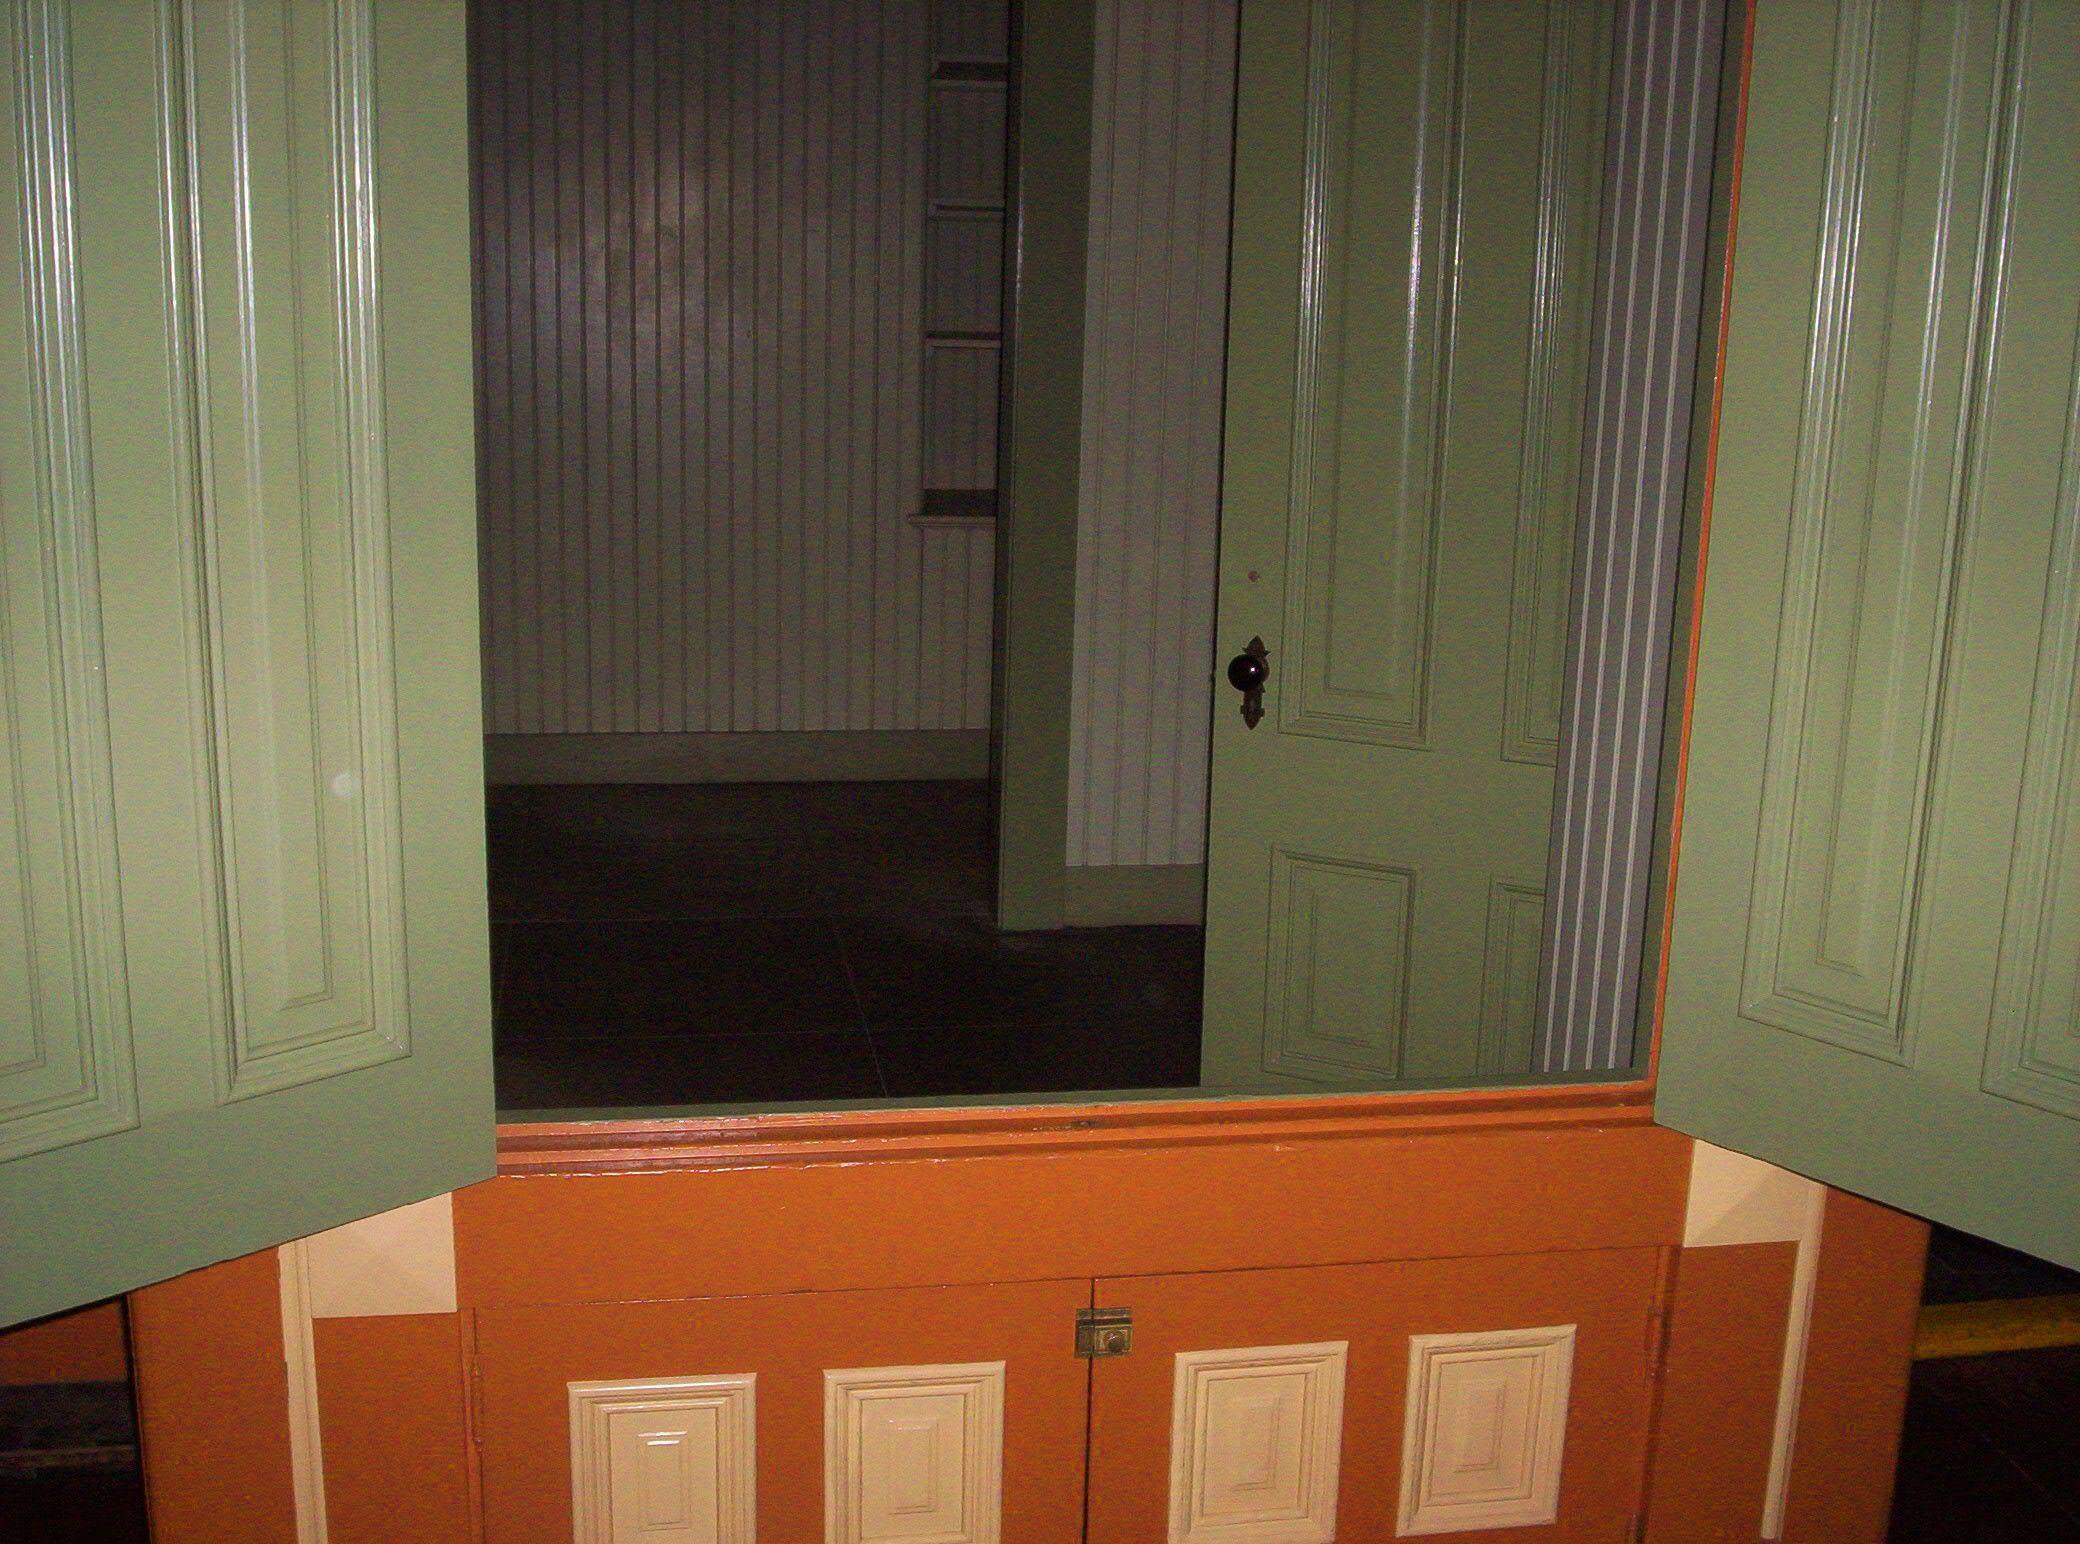 The Winchester Mystery House The ojays The back and Cabinets